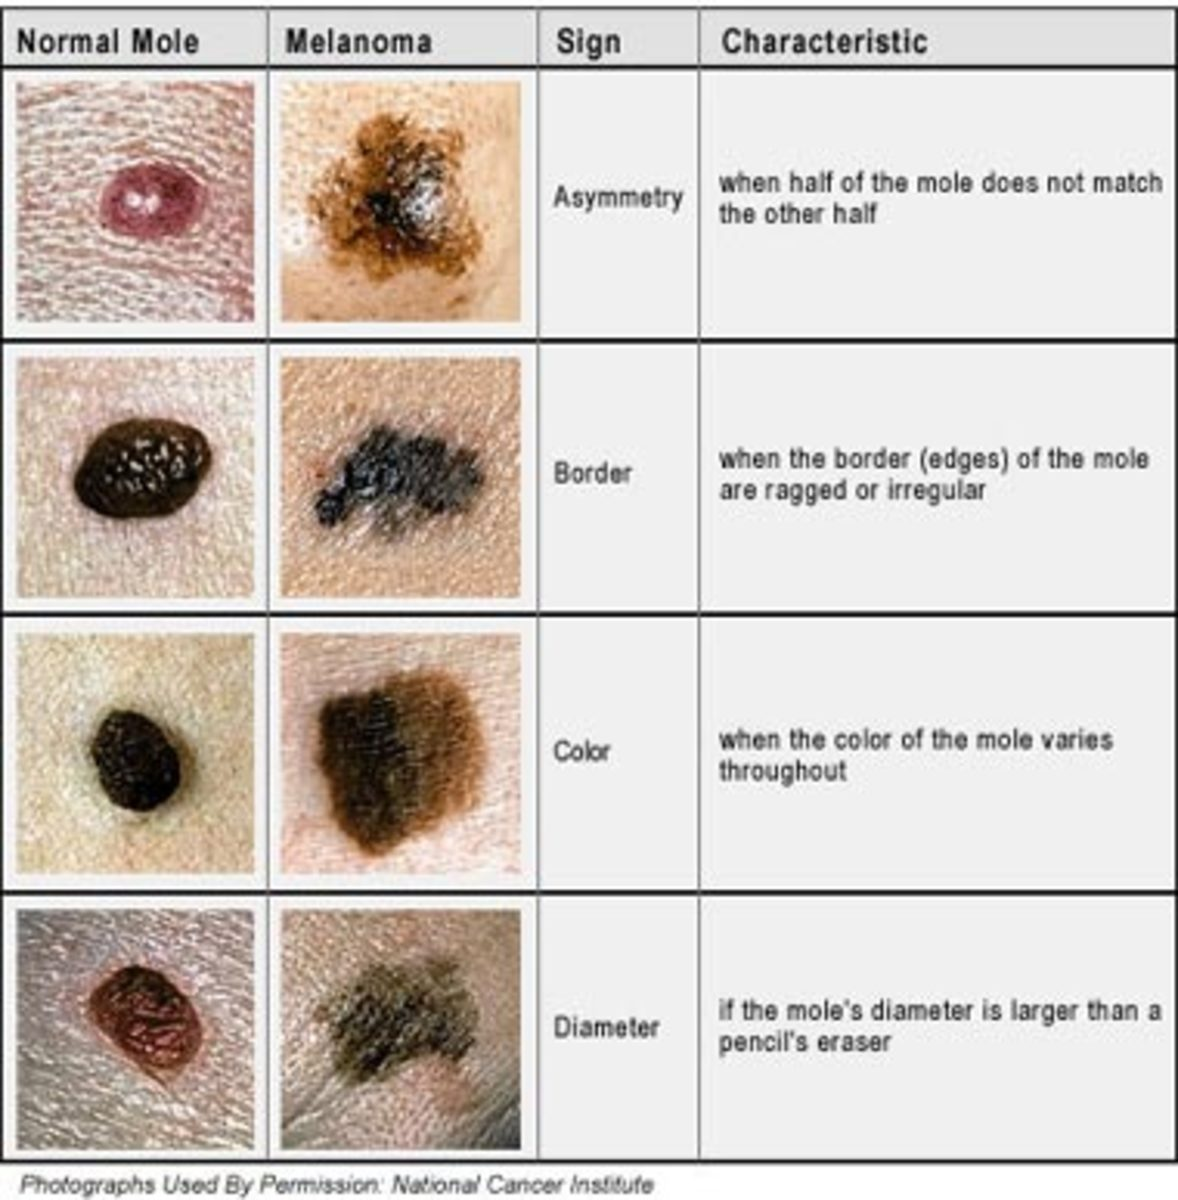 malignant-melanoma-the-killer-mole-in-the-skin